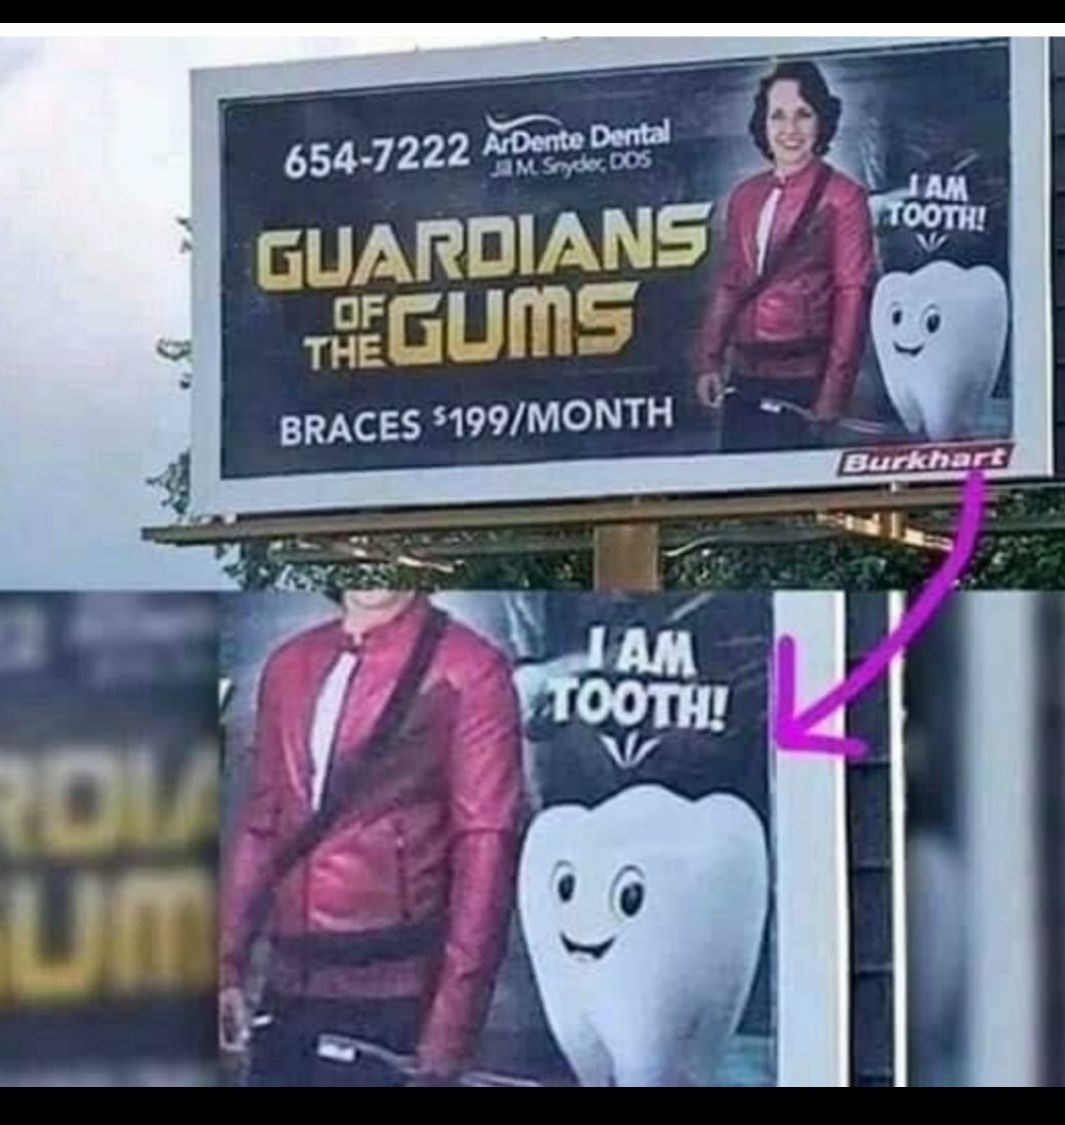 I am tooth!!!!